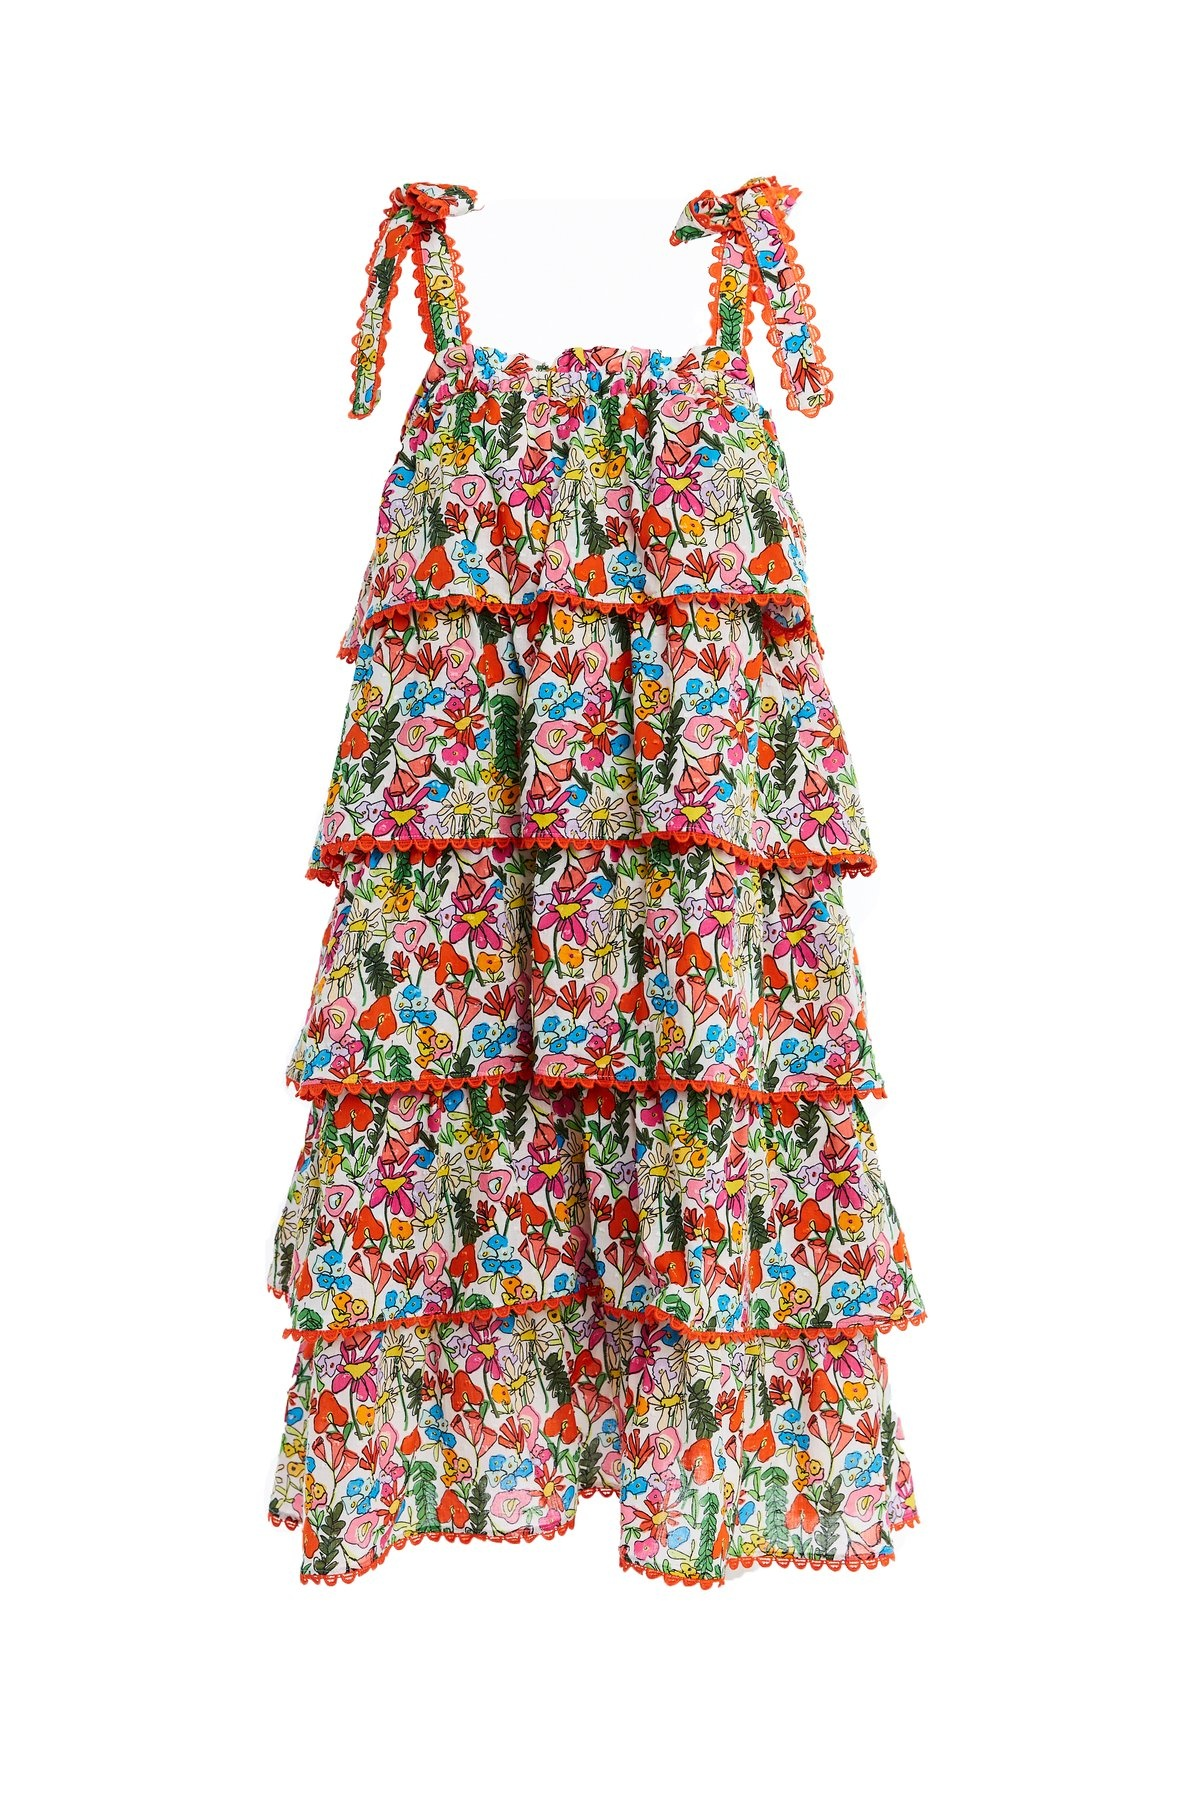 Crosby By Mollie Burch Beckett Dress/Skirt Giverny